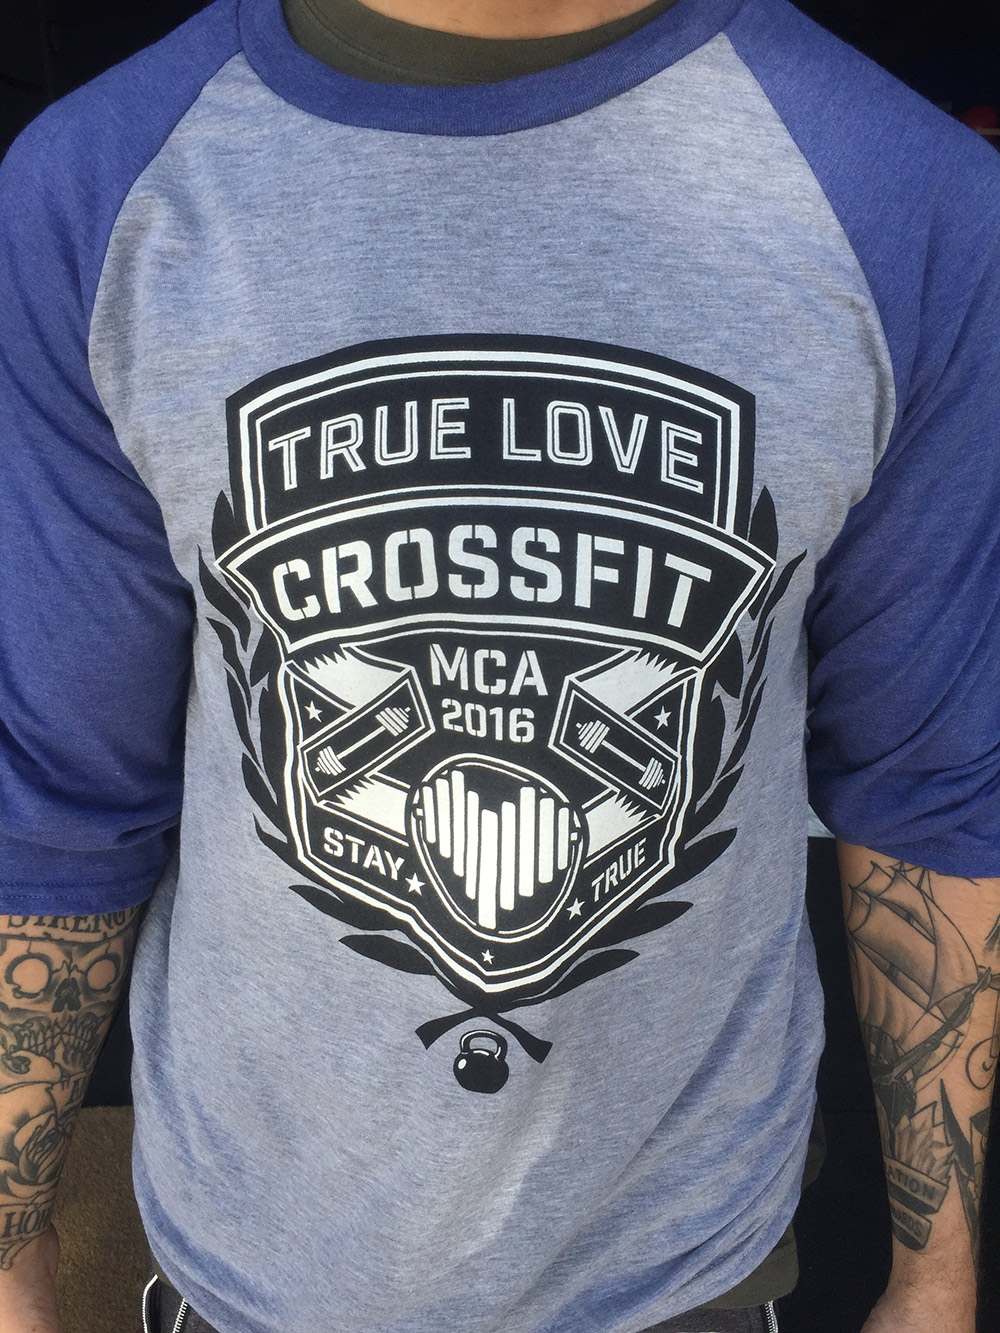 Camiseta Truelove Crossfit MCA 2016 Stay True